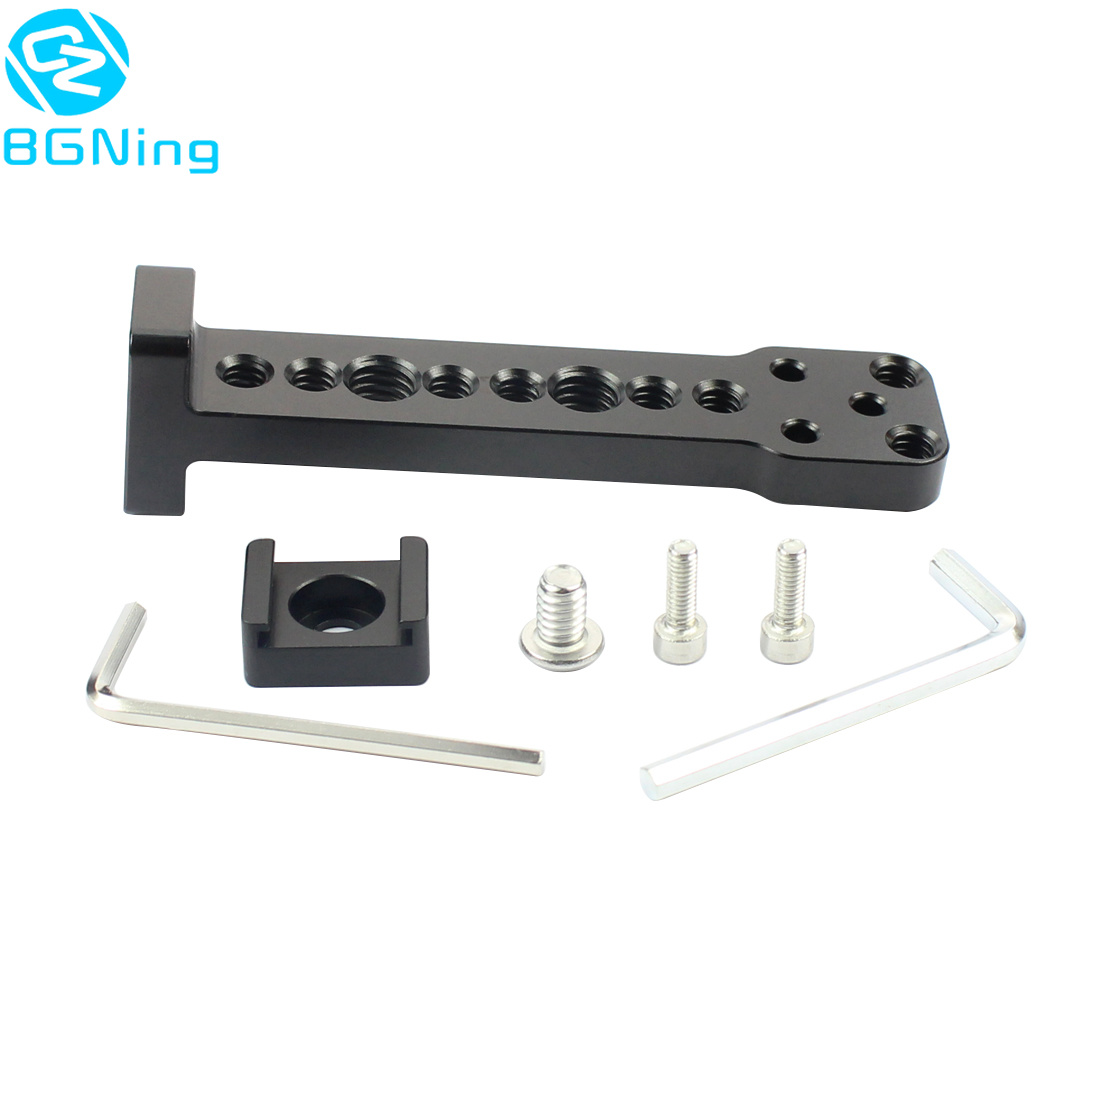 Aluminium External Extension Mounting Plate Bracket Quick Release For Mic Monitor Arm Adapter For DJI Ronin S Handheld Gimbal